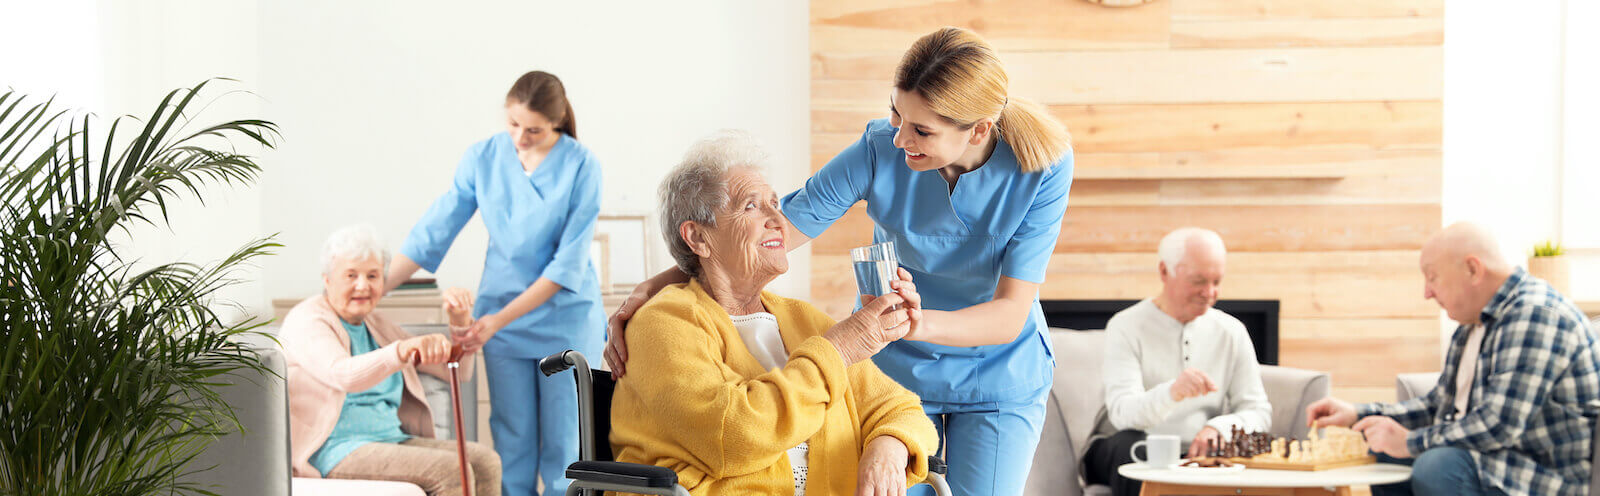 caregivers taking care of their residences